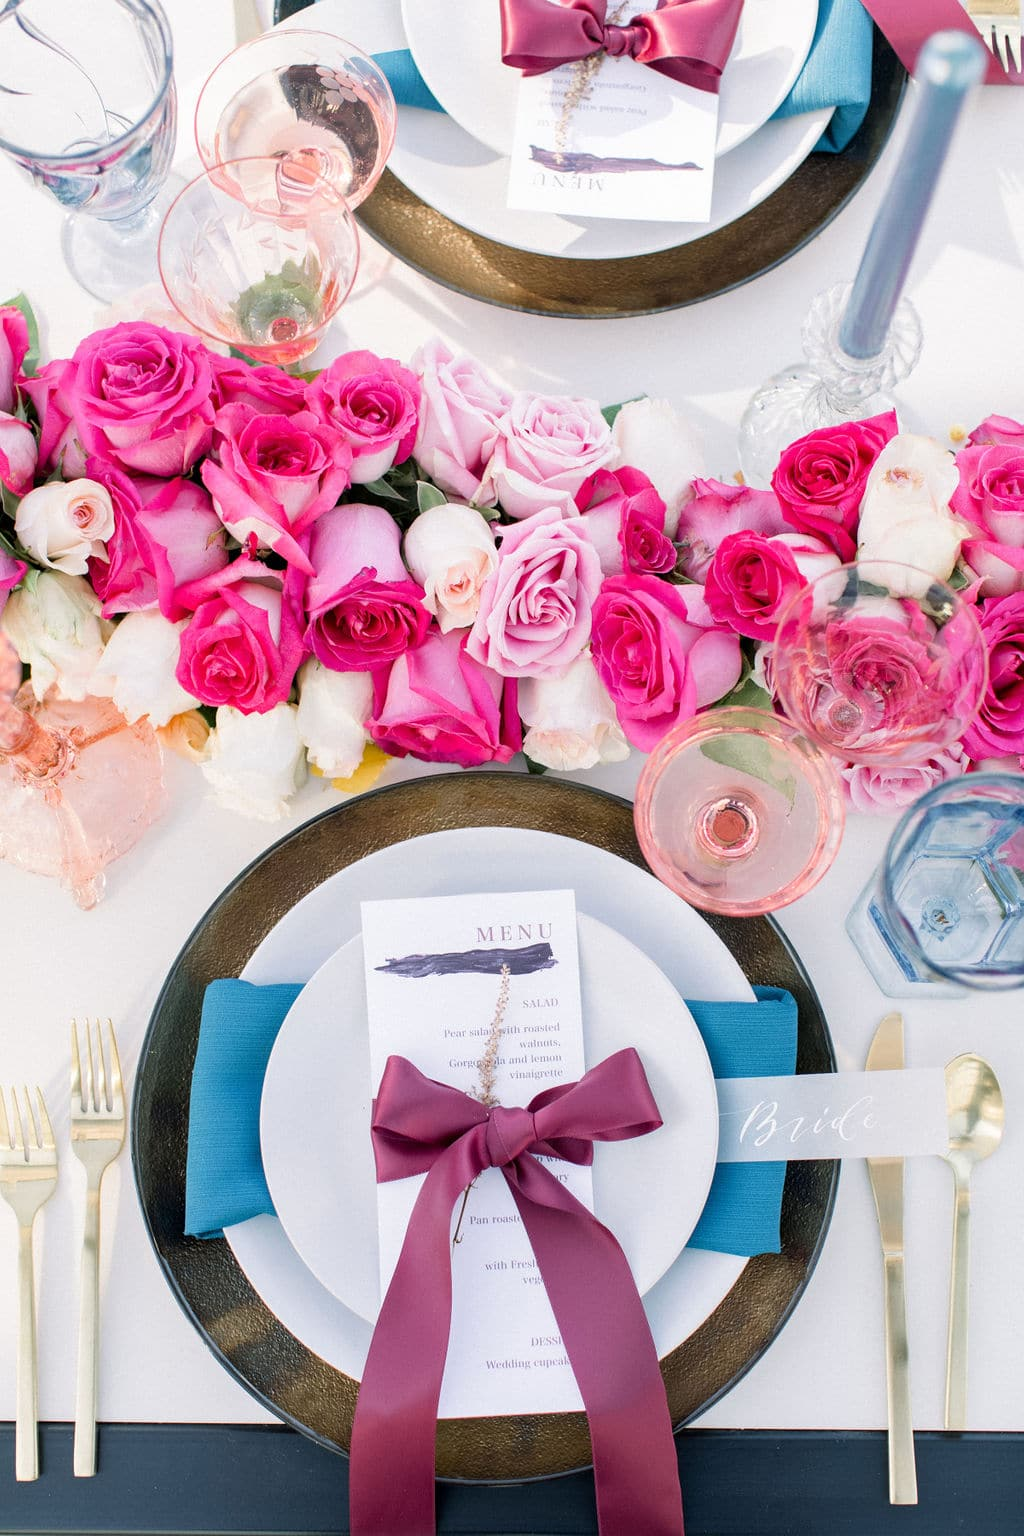 further shot of table setting that shows off pink rose centerpiece